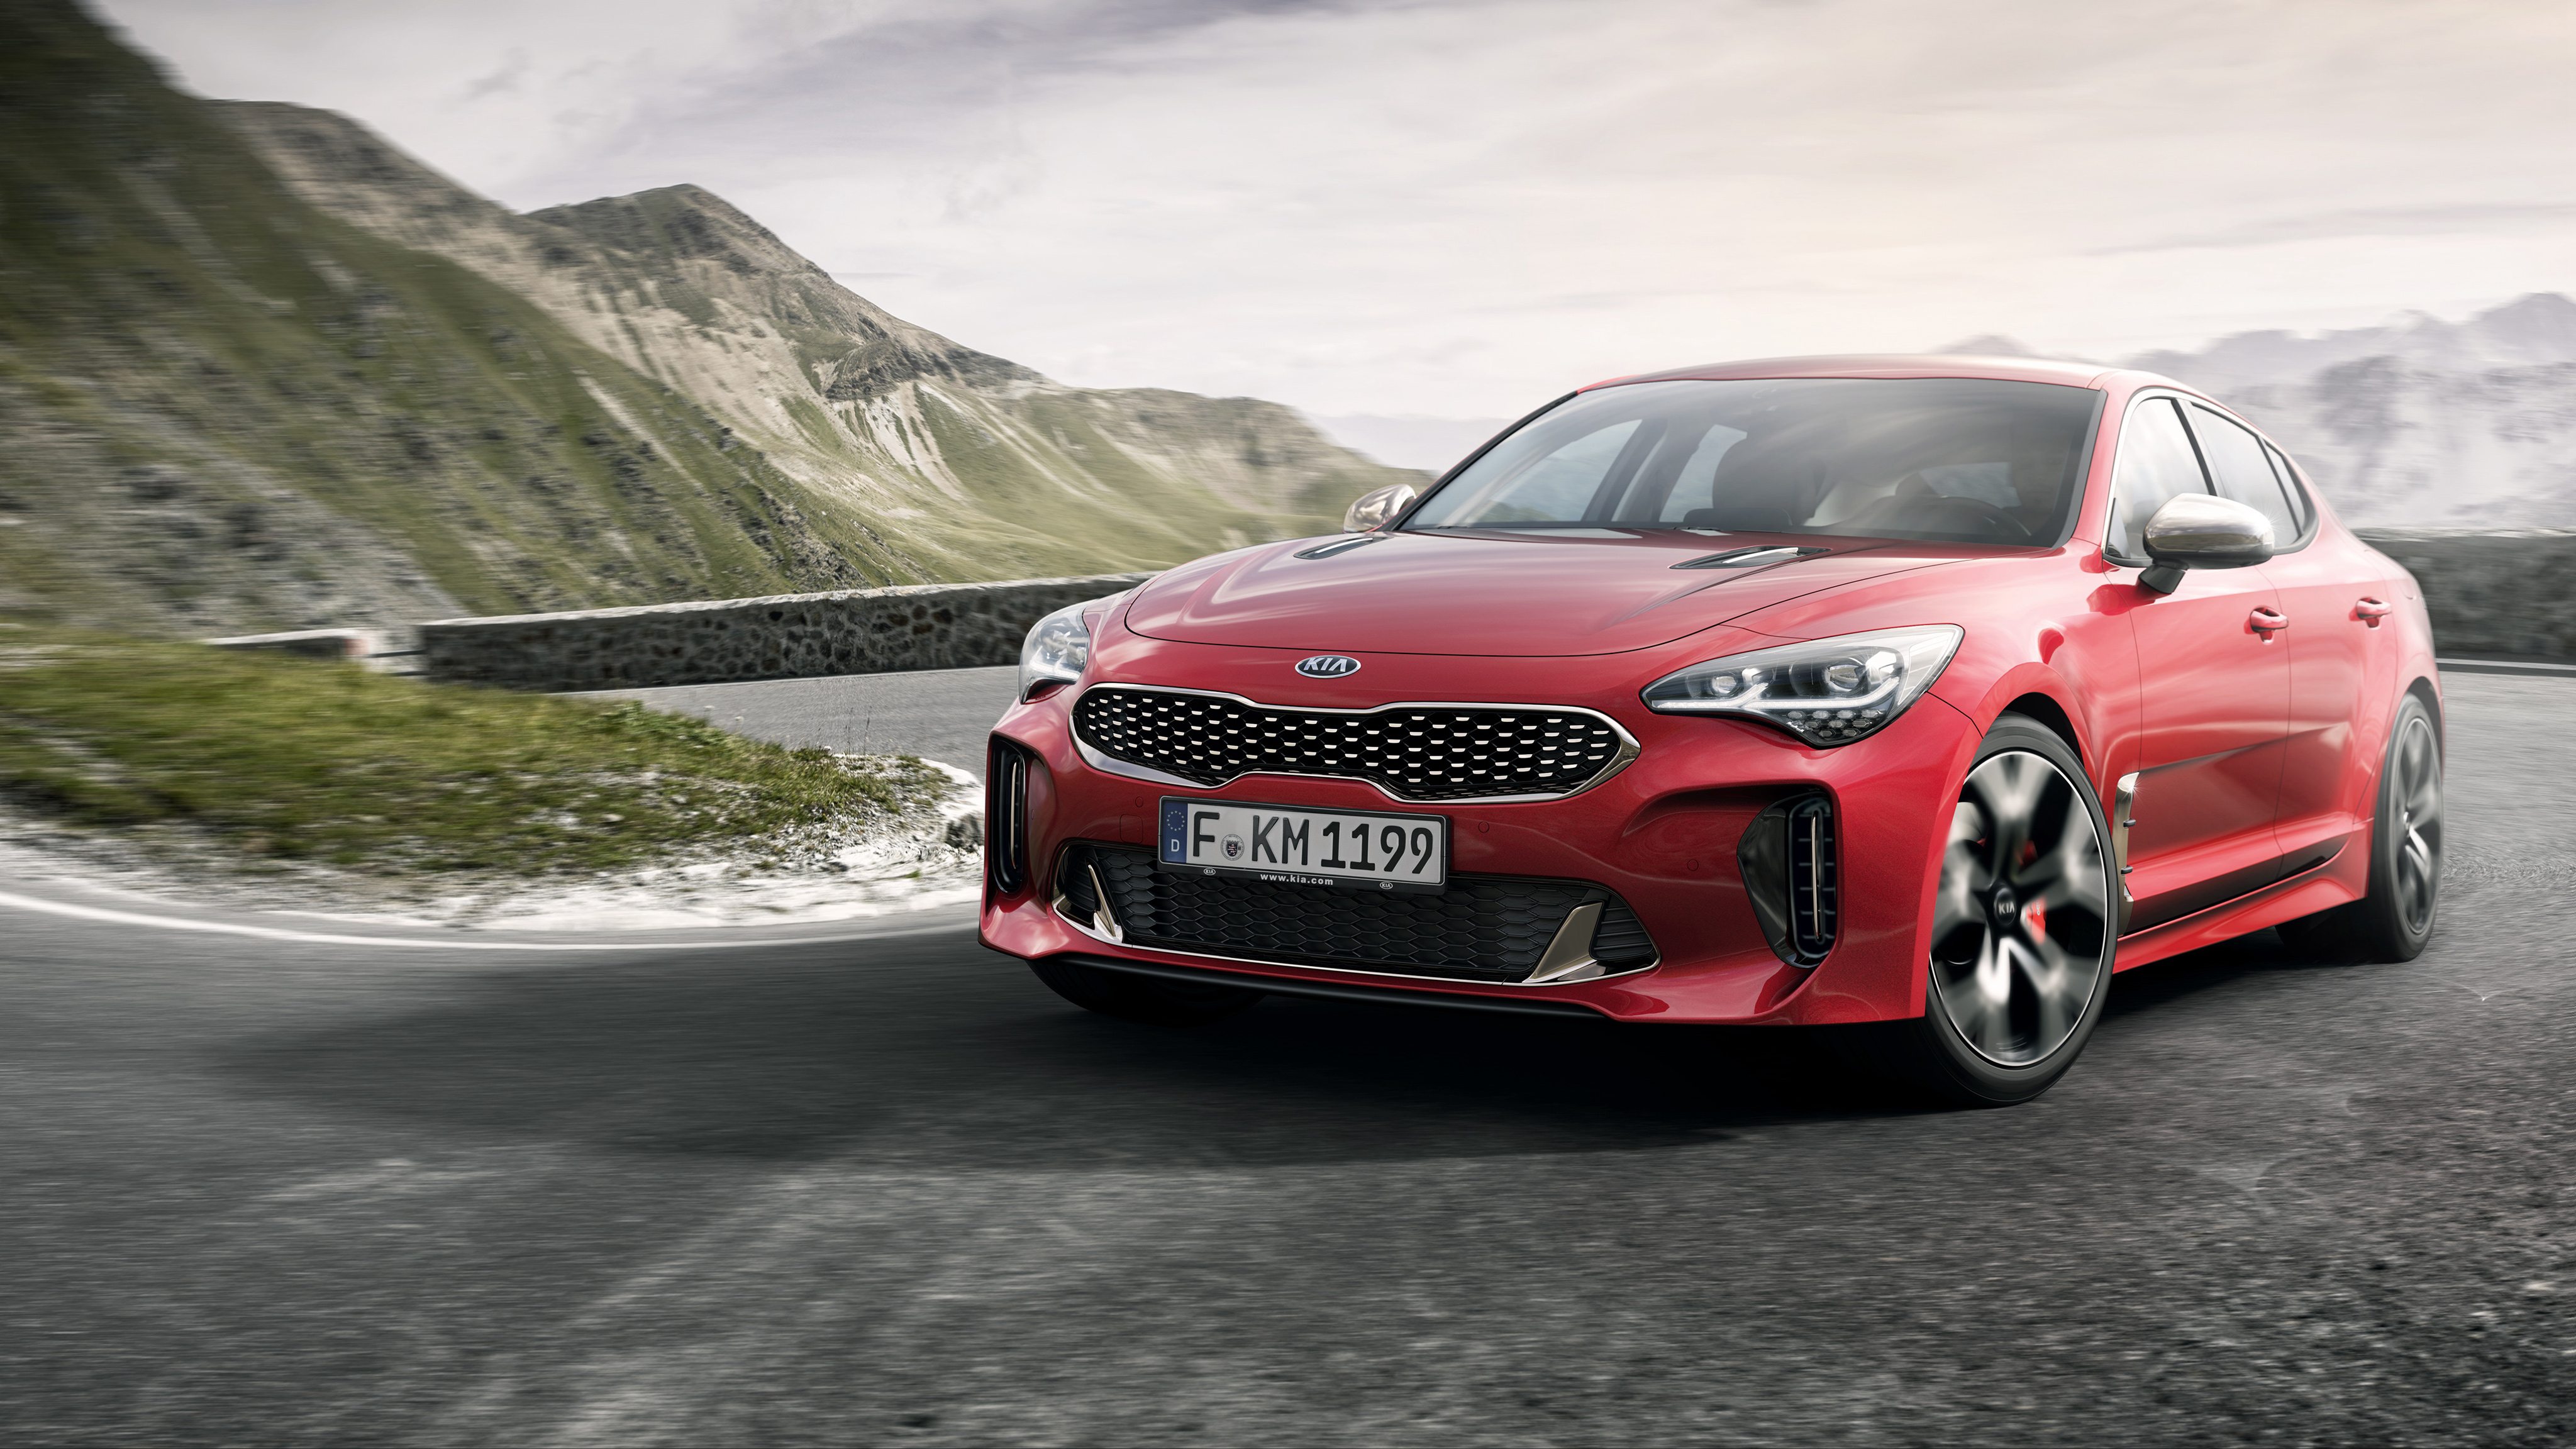 2018 Kia Stinger Gt 4k Wallpaper Hd Car Wallpapers Id 7604